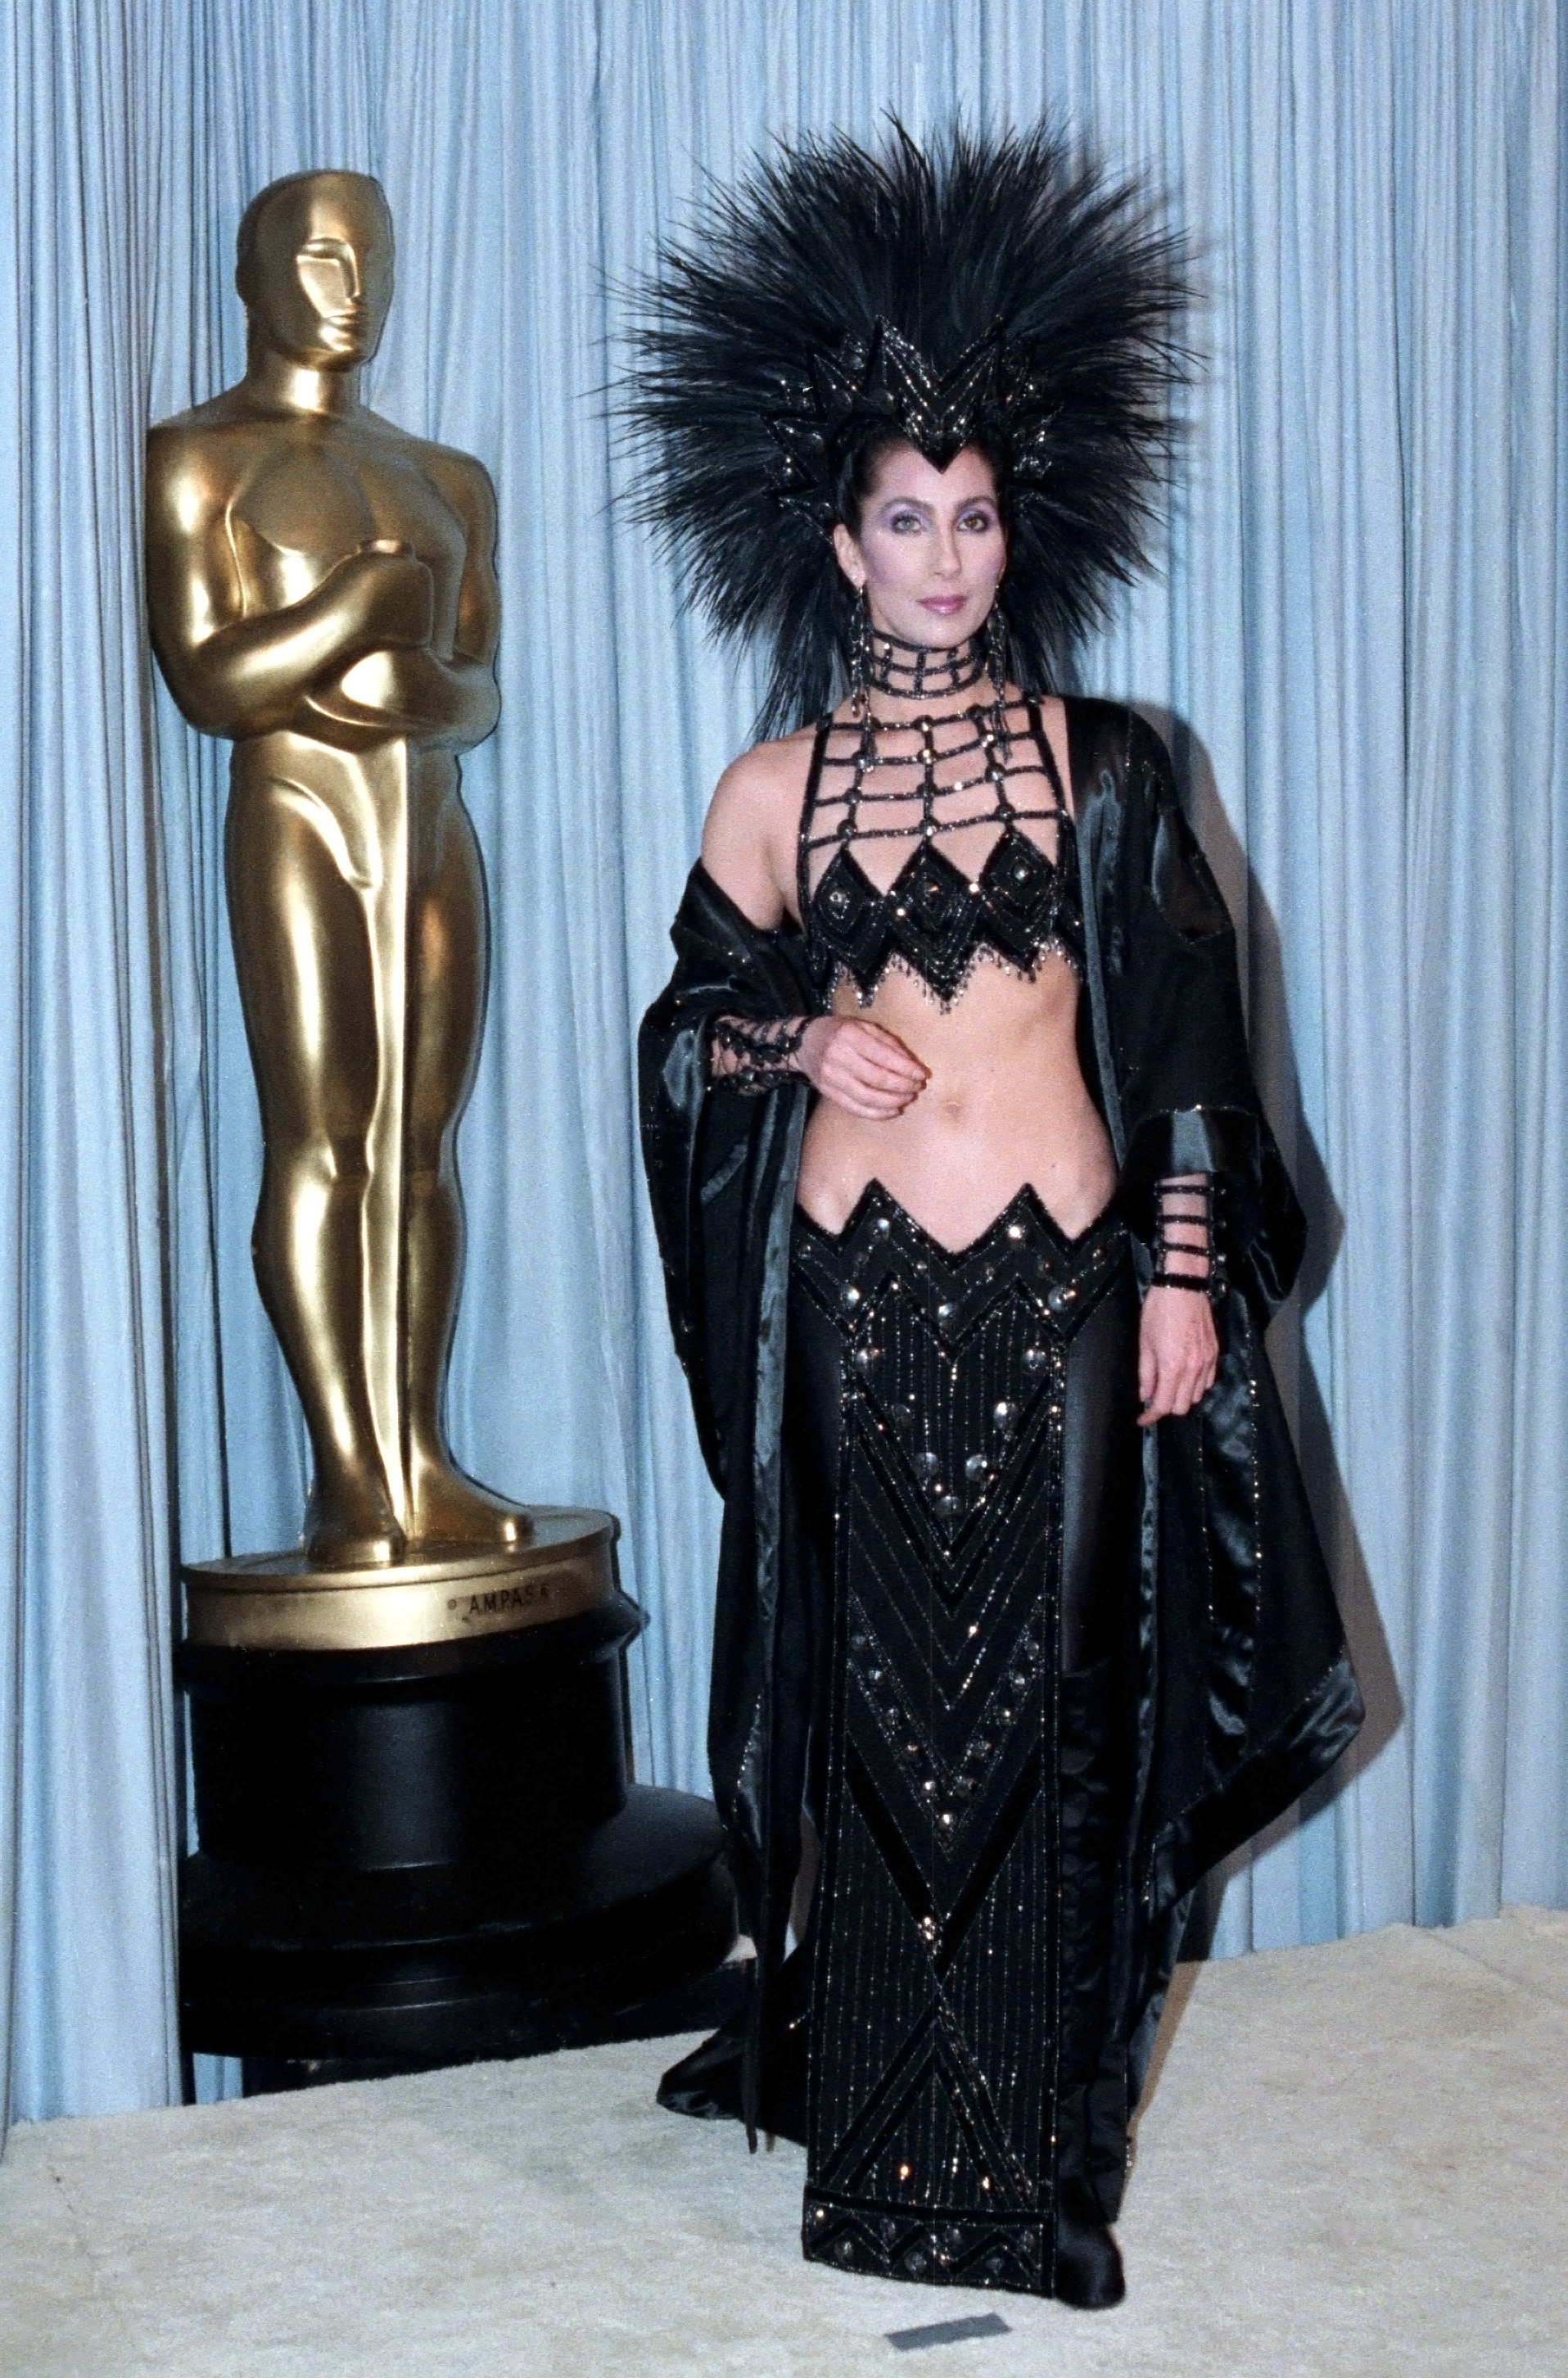 Cher Through The Years - Cher infamously clashed with Mask director Peter Bogdanovich on set, so she attended the Oscars in a black tarantula-like dress in a reported attempt to prove a point.